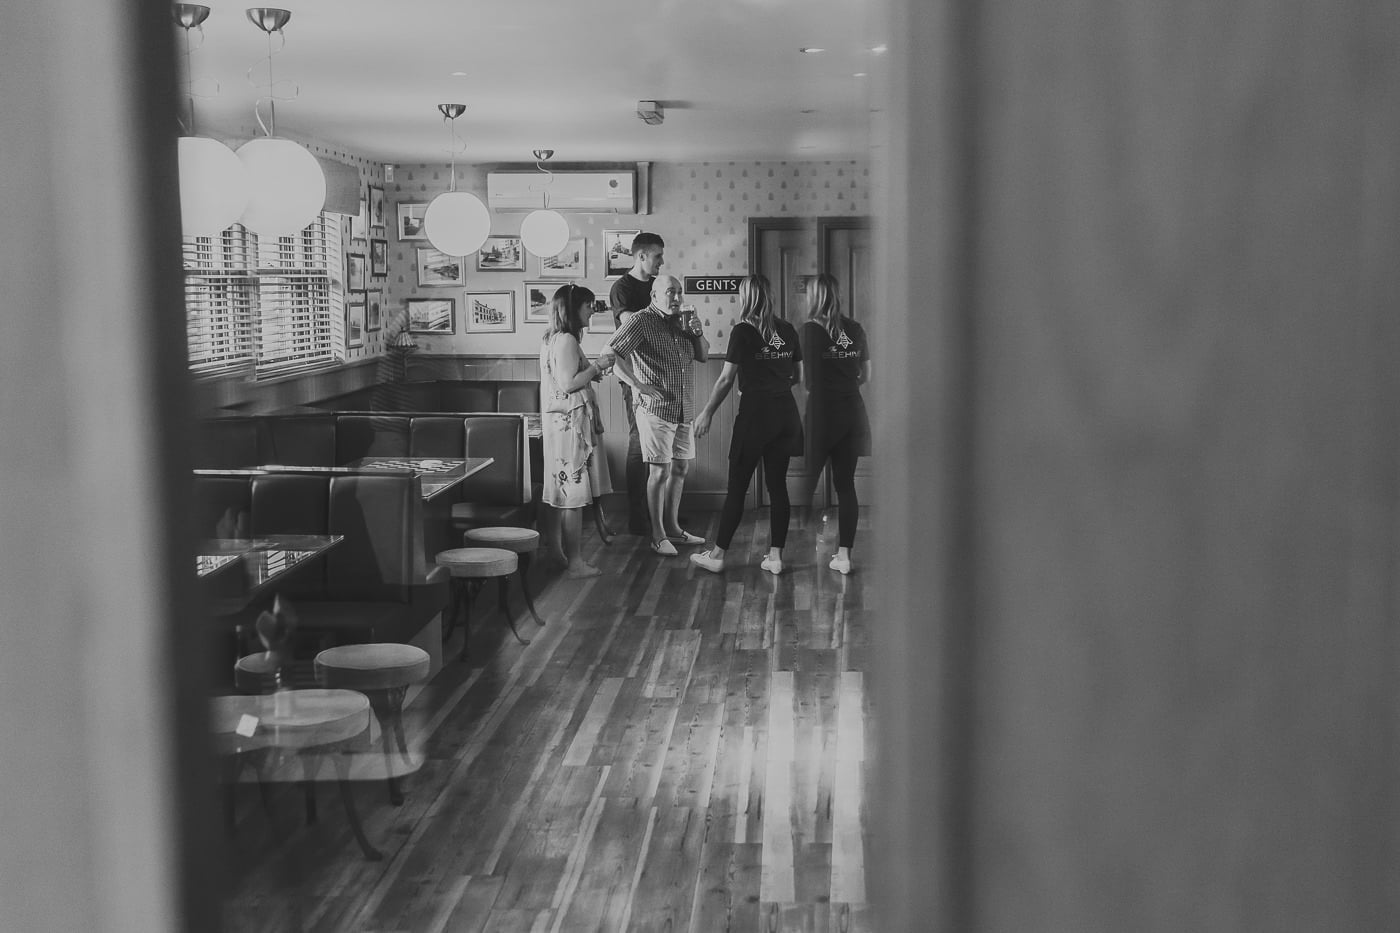 Candid shot of people looking around a pub in black and white